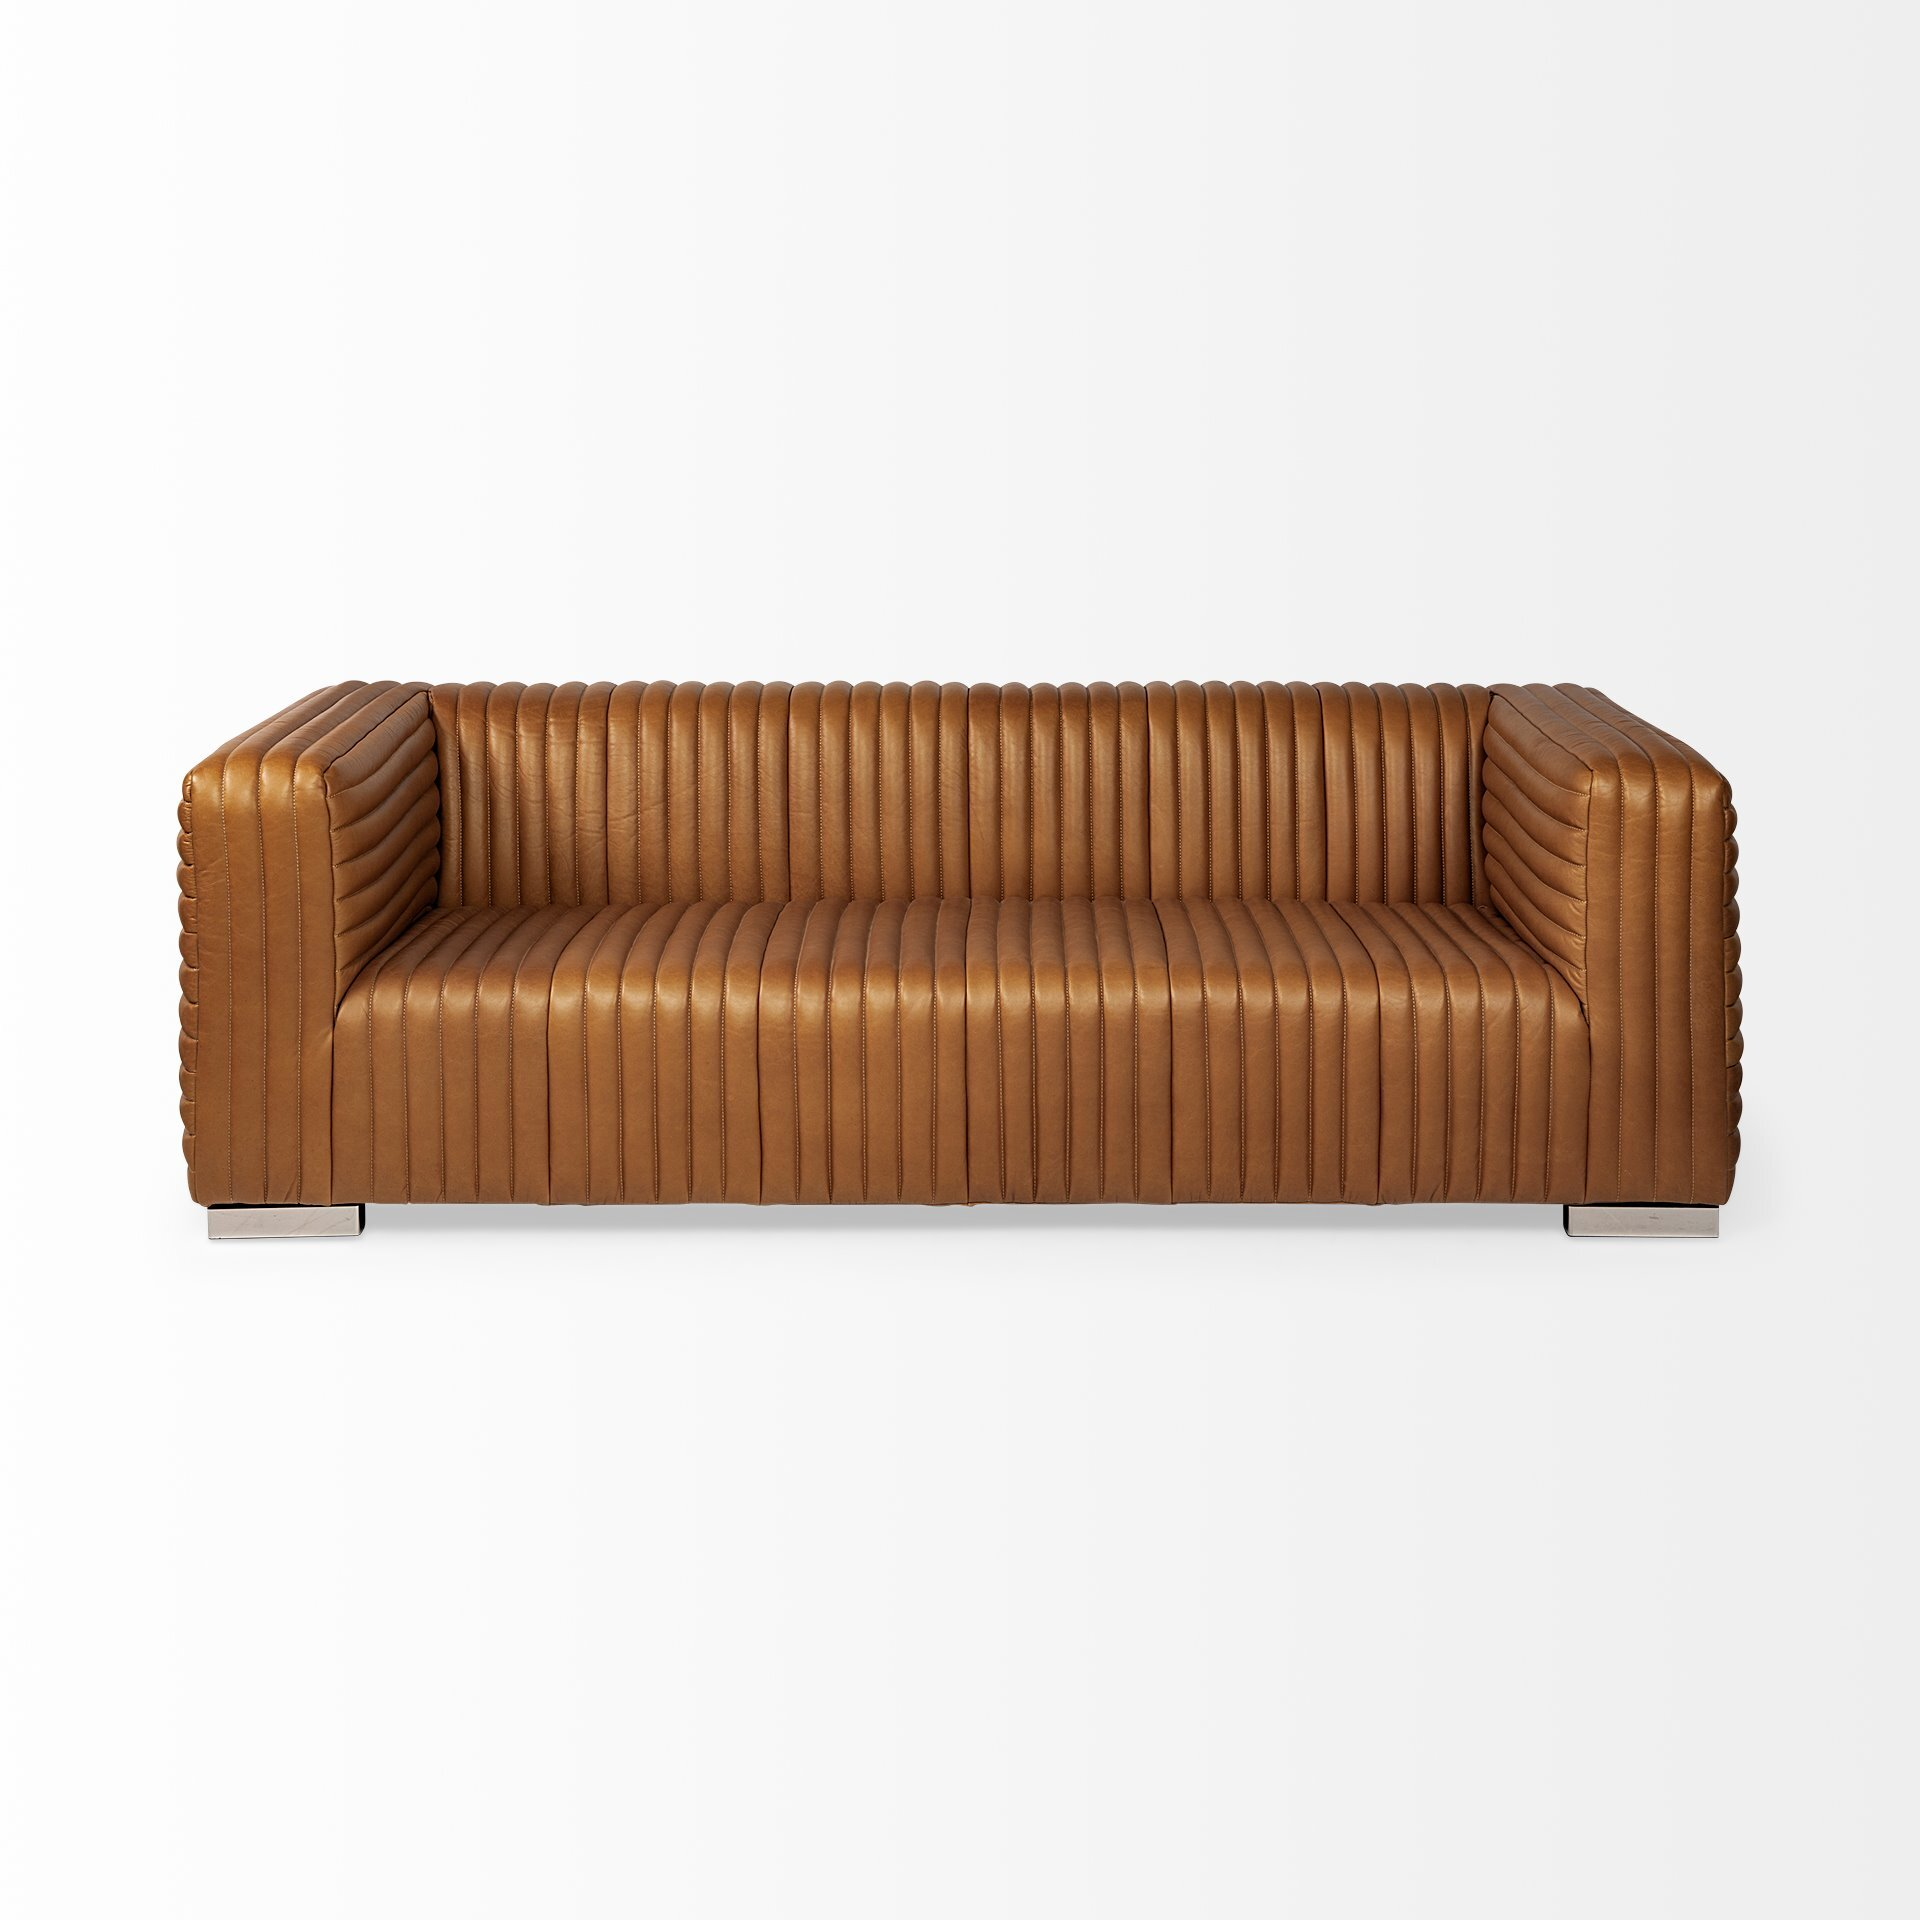 17 Stories Hardee Genuine Leather 86 Tuxedo Arm Sofa Wayfair